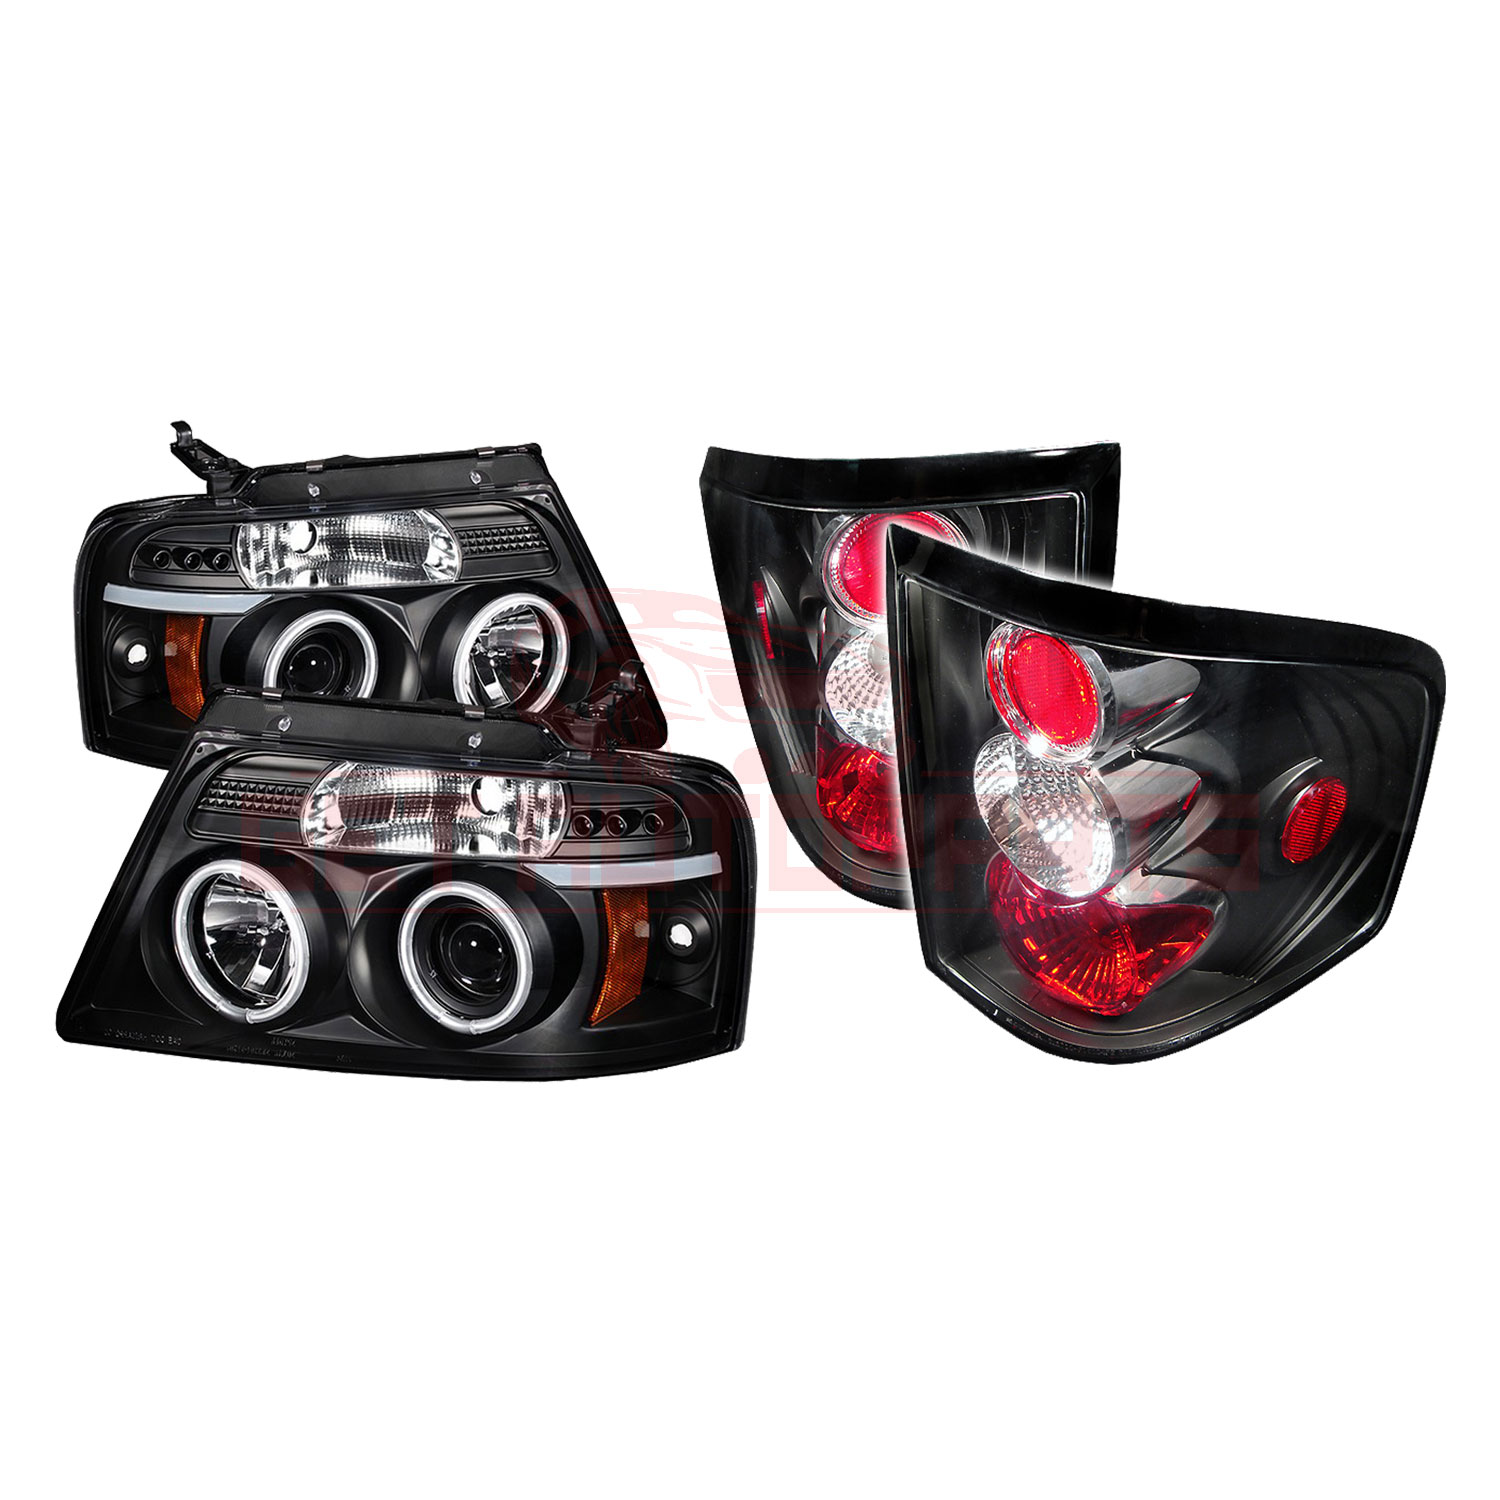 Spyder LED Projector Headlights & Tail Lights Blk for Ford F150 Flareside 04-08 part in Headlight & Tail Light Covers category